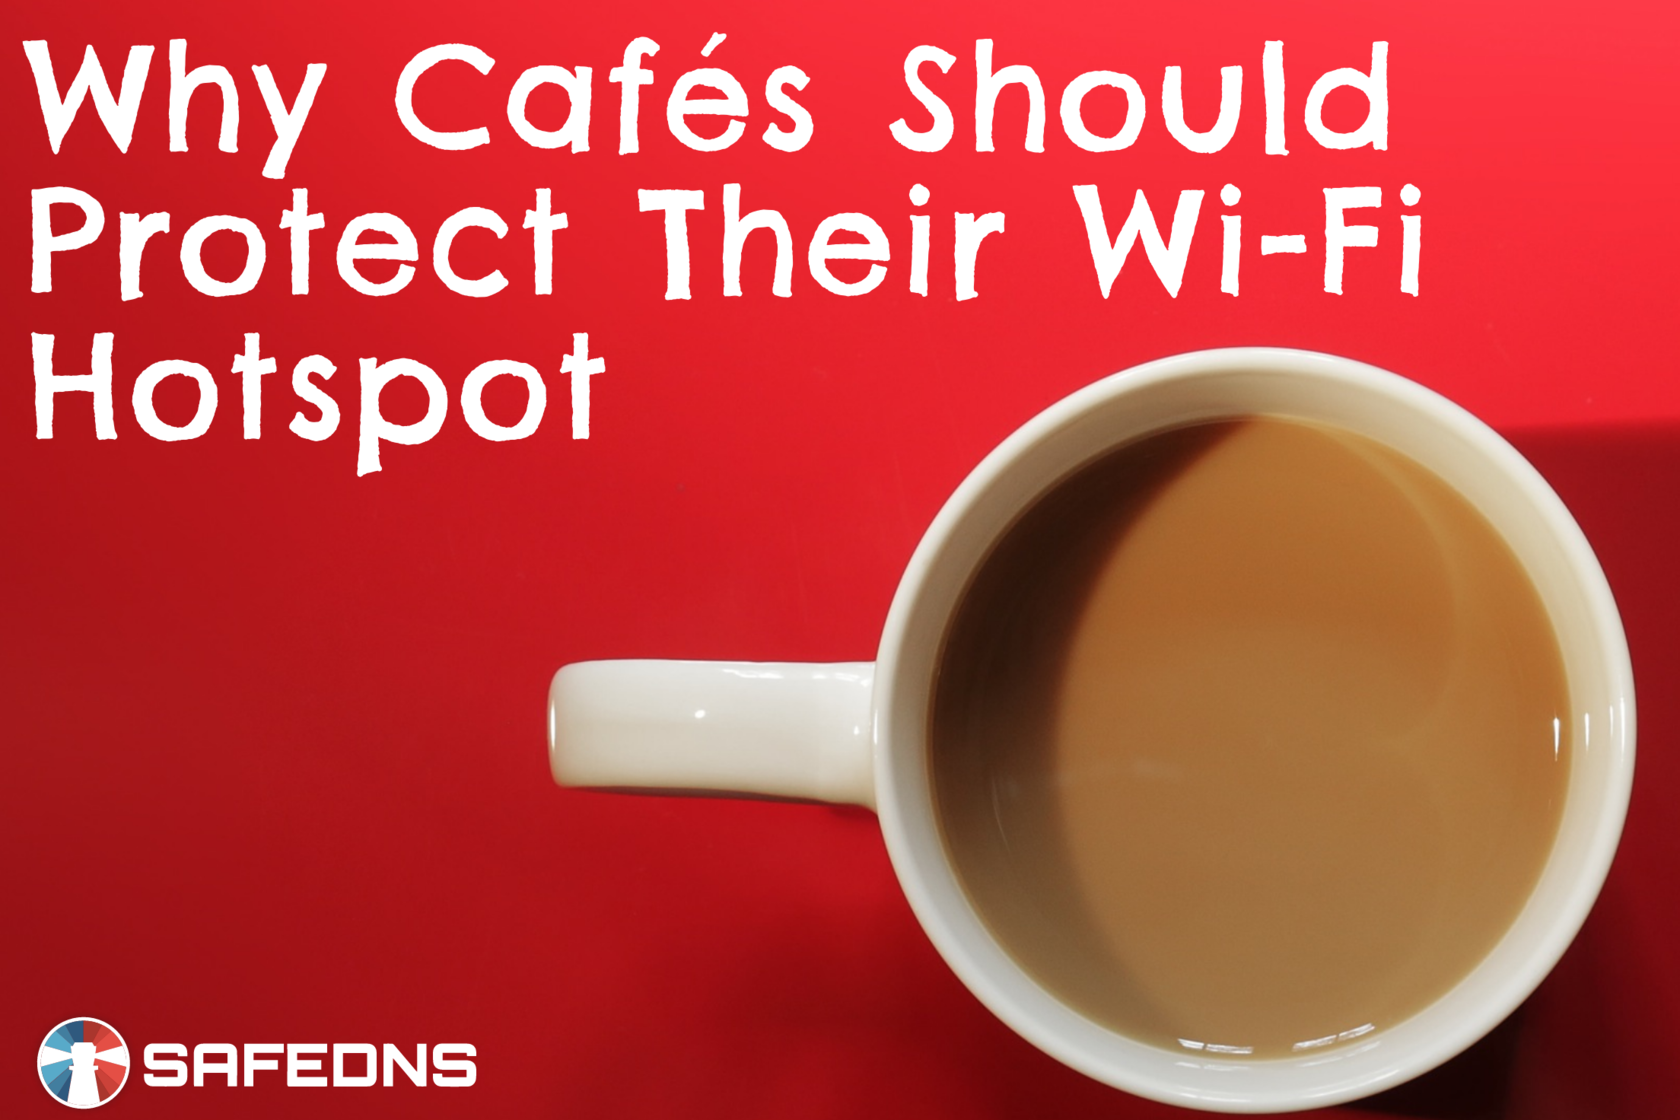 SafeDNS Wi-Fi hotspot coffee